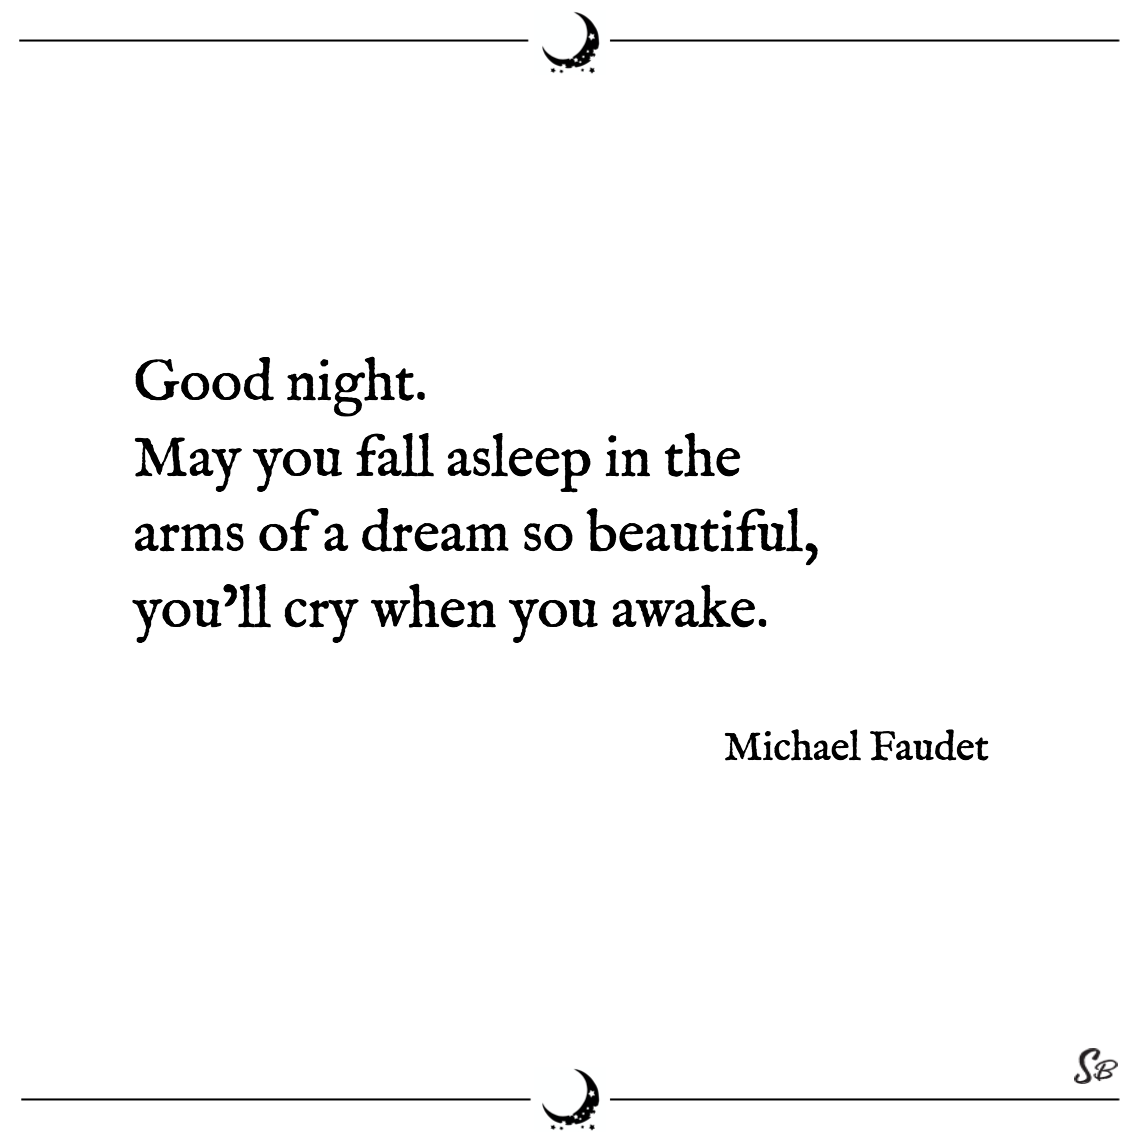 Quotes Night Stunning 31 Good Night Quotes That Honor The Beauty Of The Night  Spirit